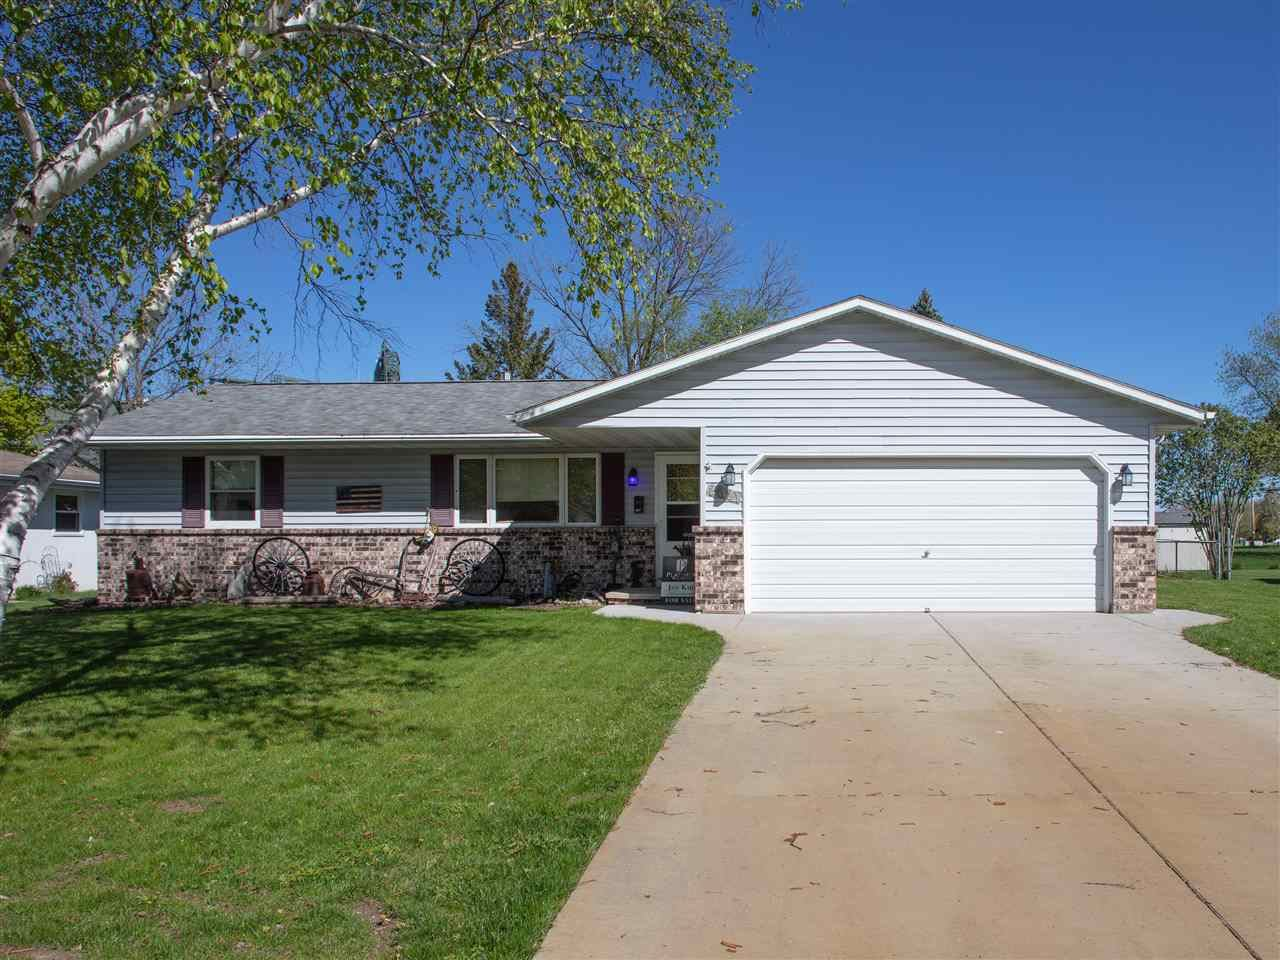 2021 TRUE Lane, Green Bay, WI 54304 - MLS#: 50218878